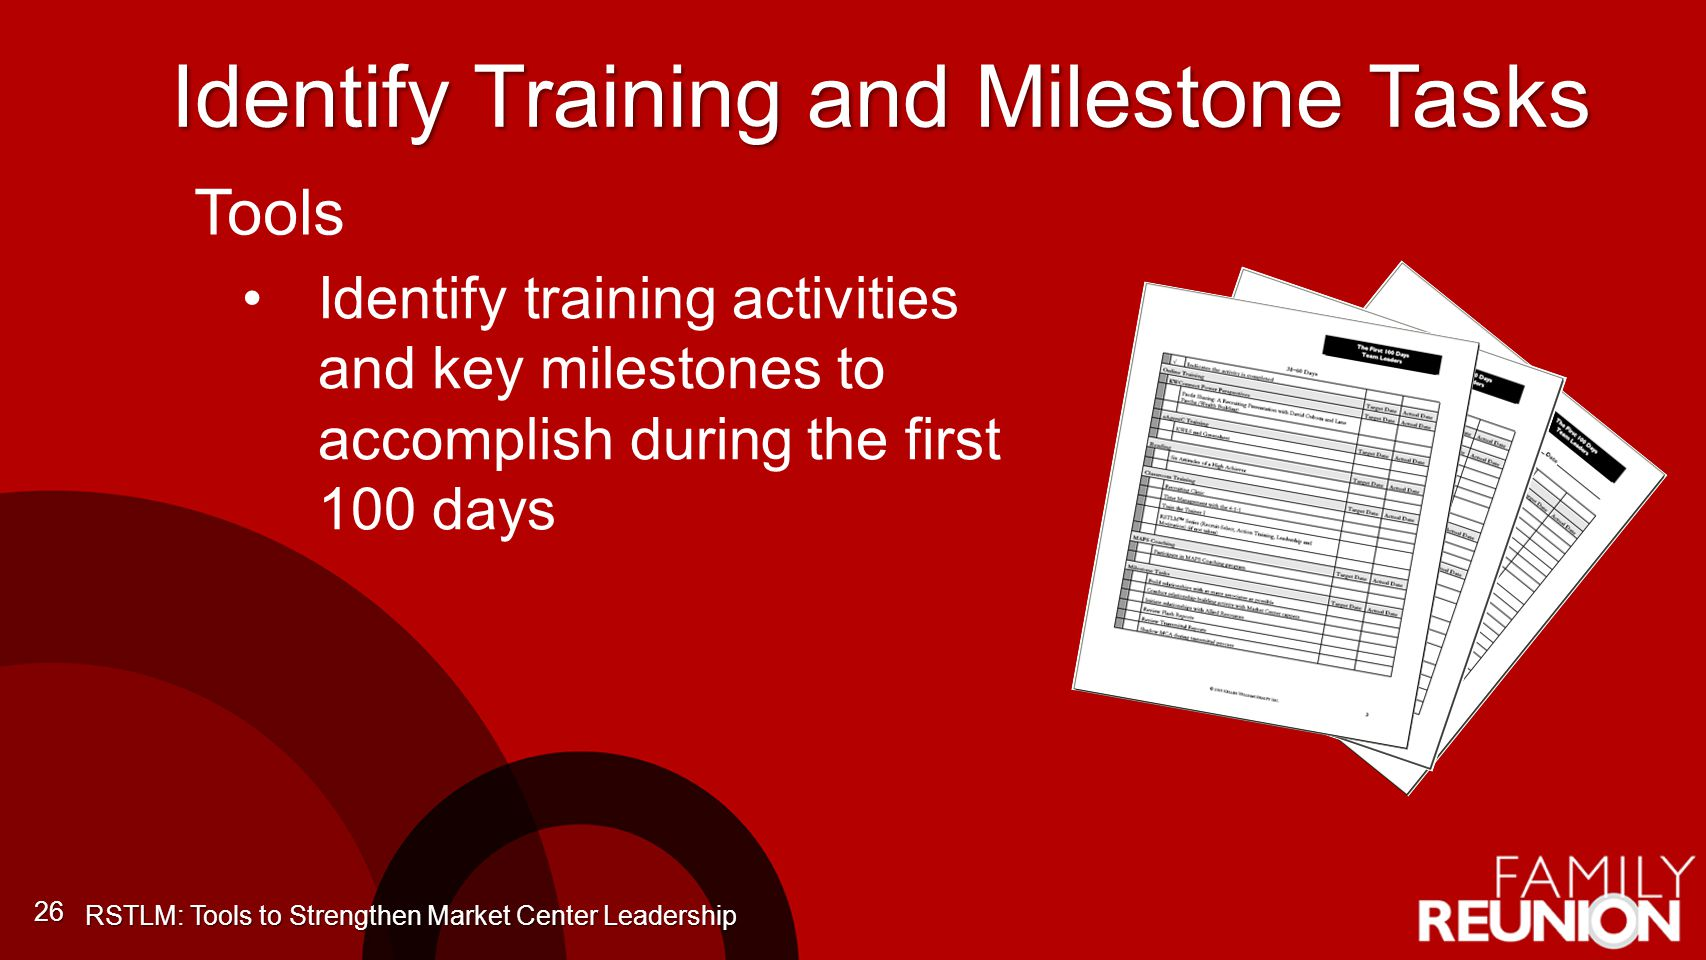 Identify Training and Milestone Tasks 26 Identify training activities and key milestones to accomplish during the first 100 days RSTLM: Tools to Strengthen Market Center Leadership Tools